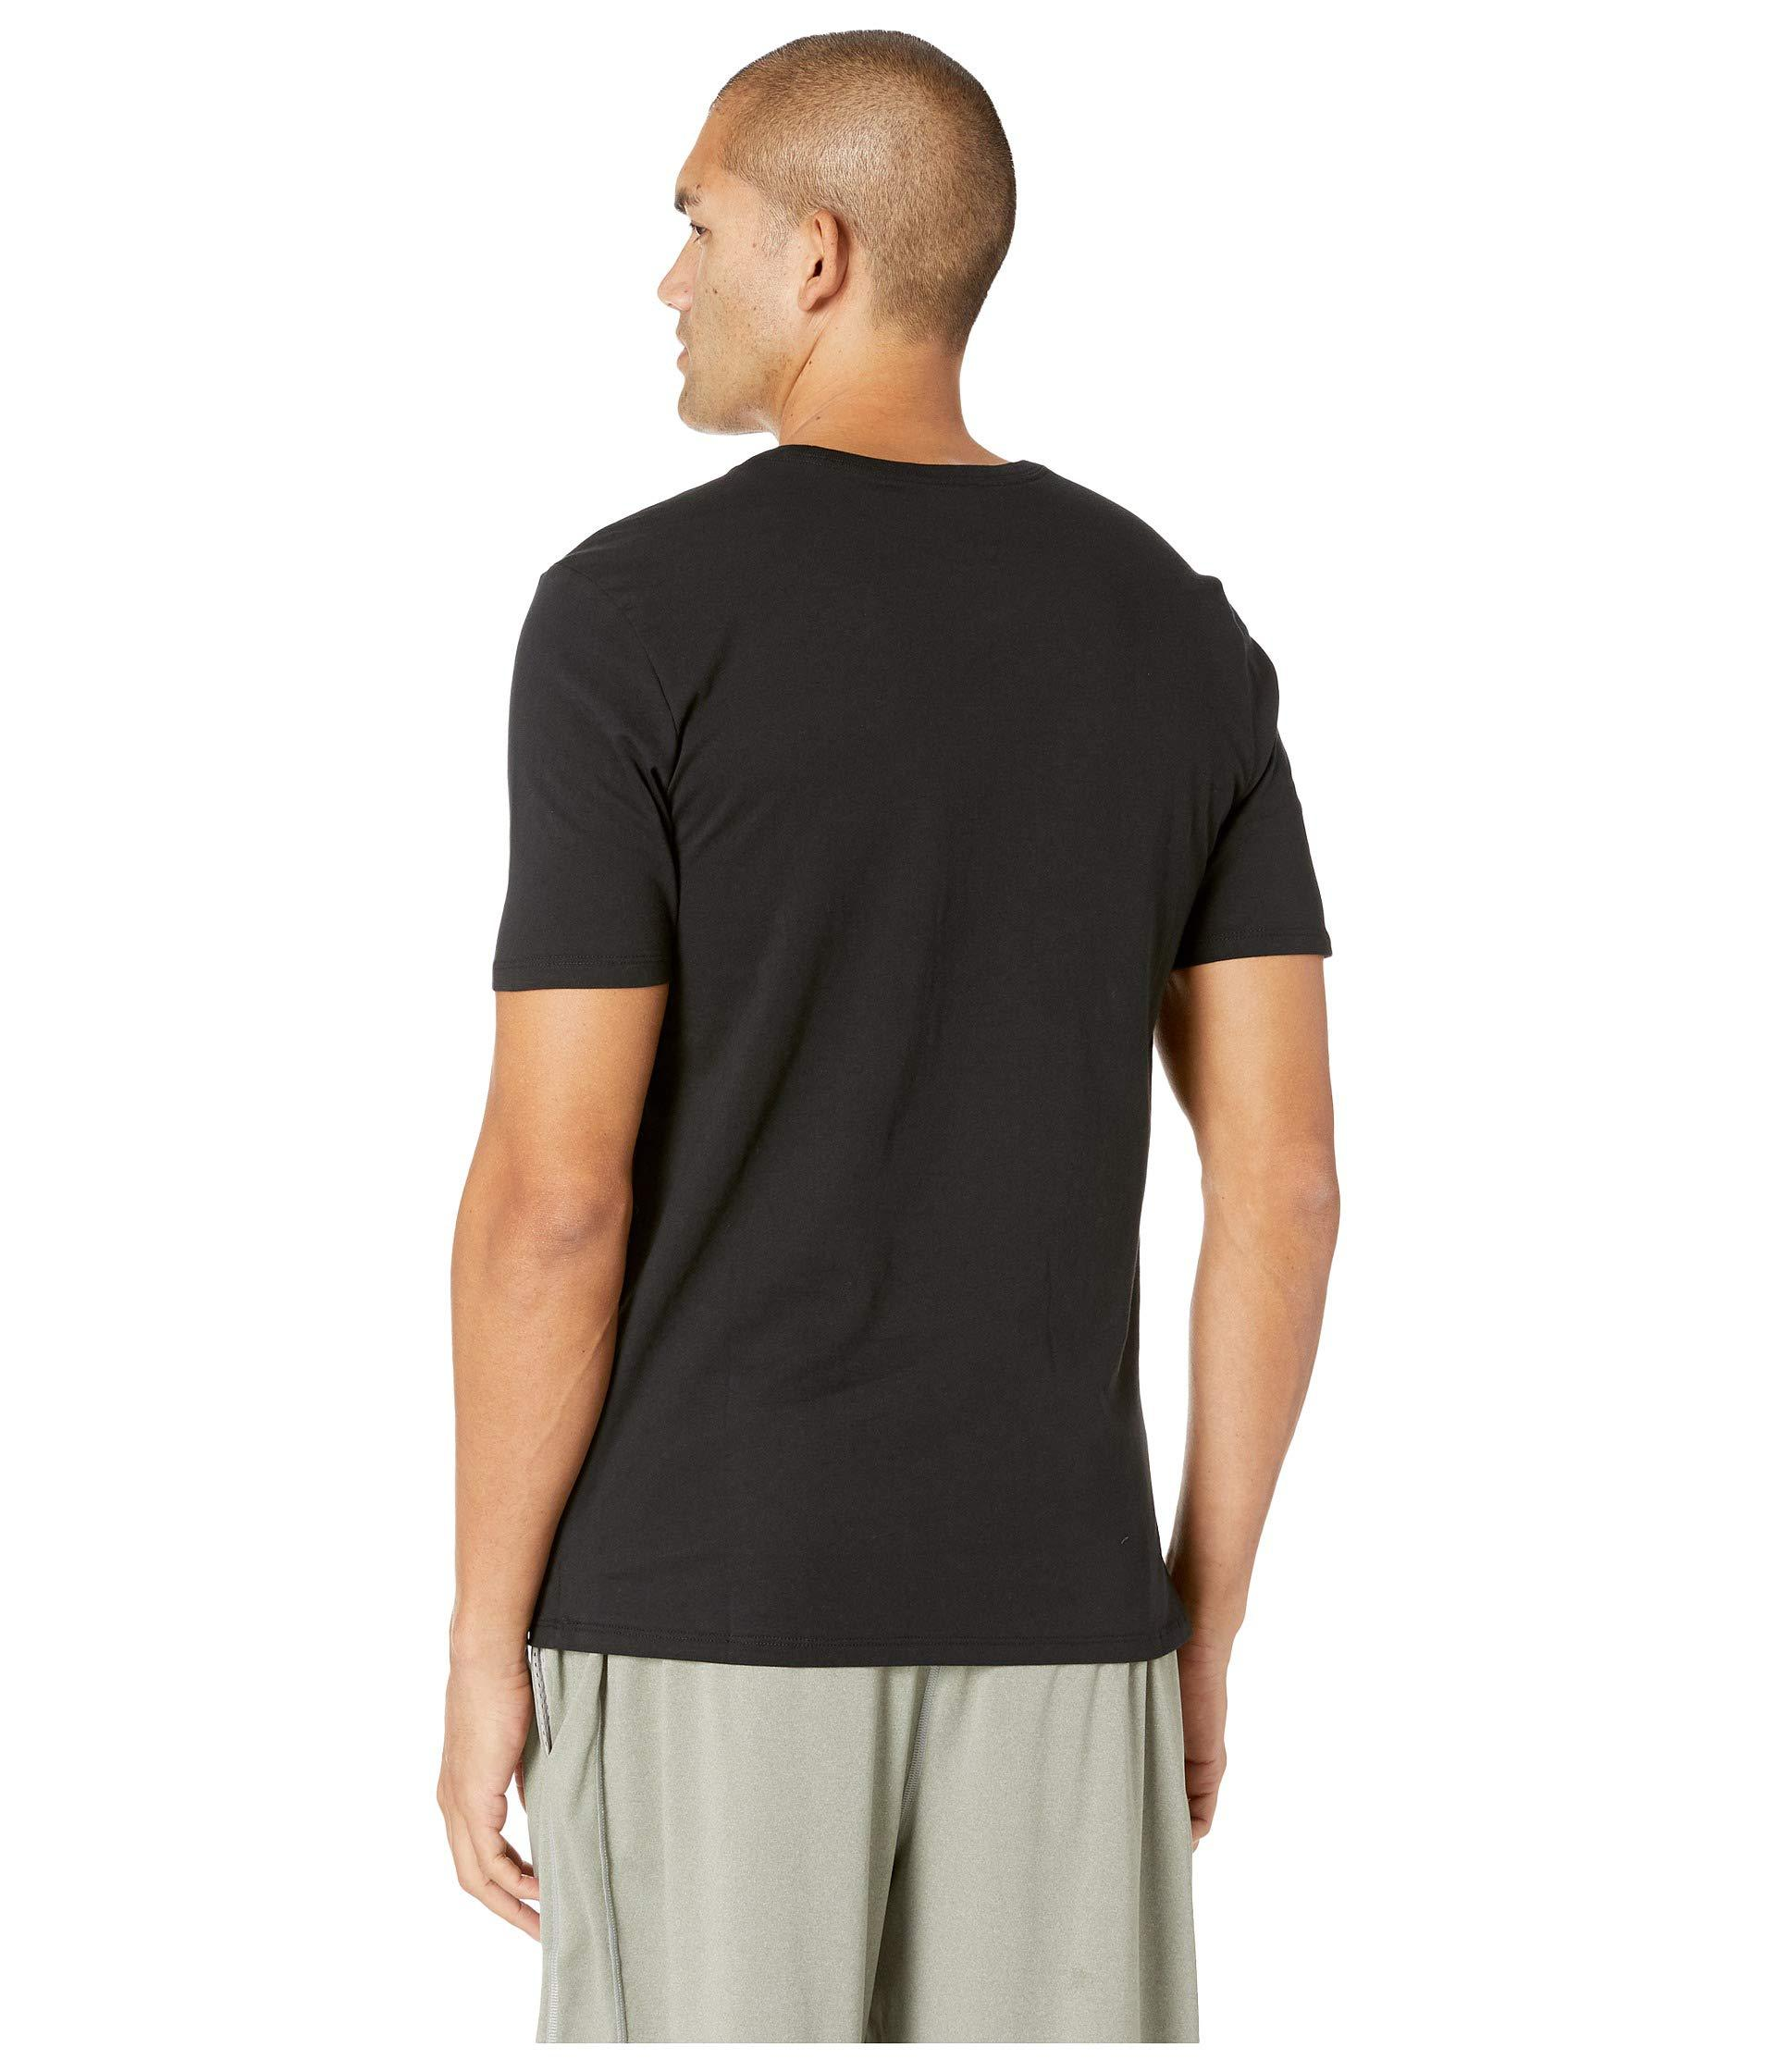 c5411003 Nike Nsw Tee Camo Pack 2 (black/neutral Olive) Men's T Shirt in ...